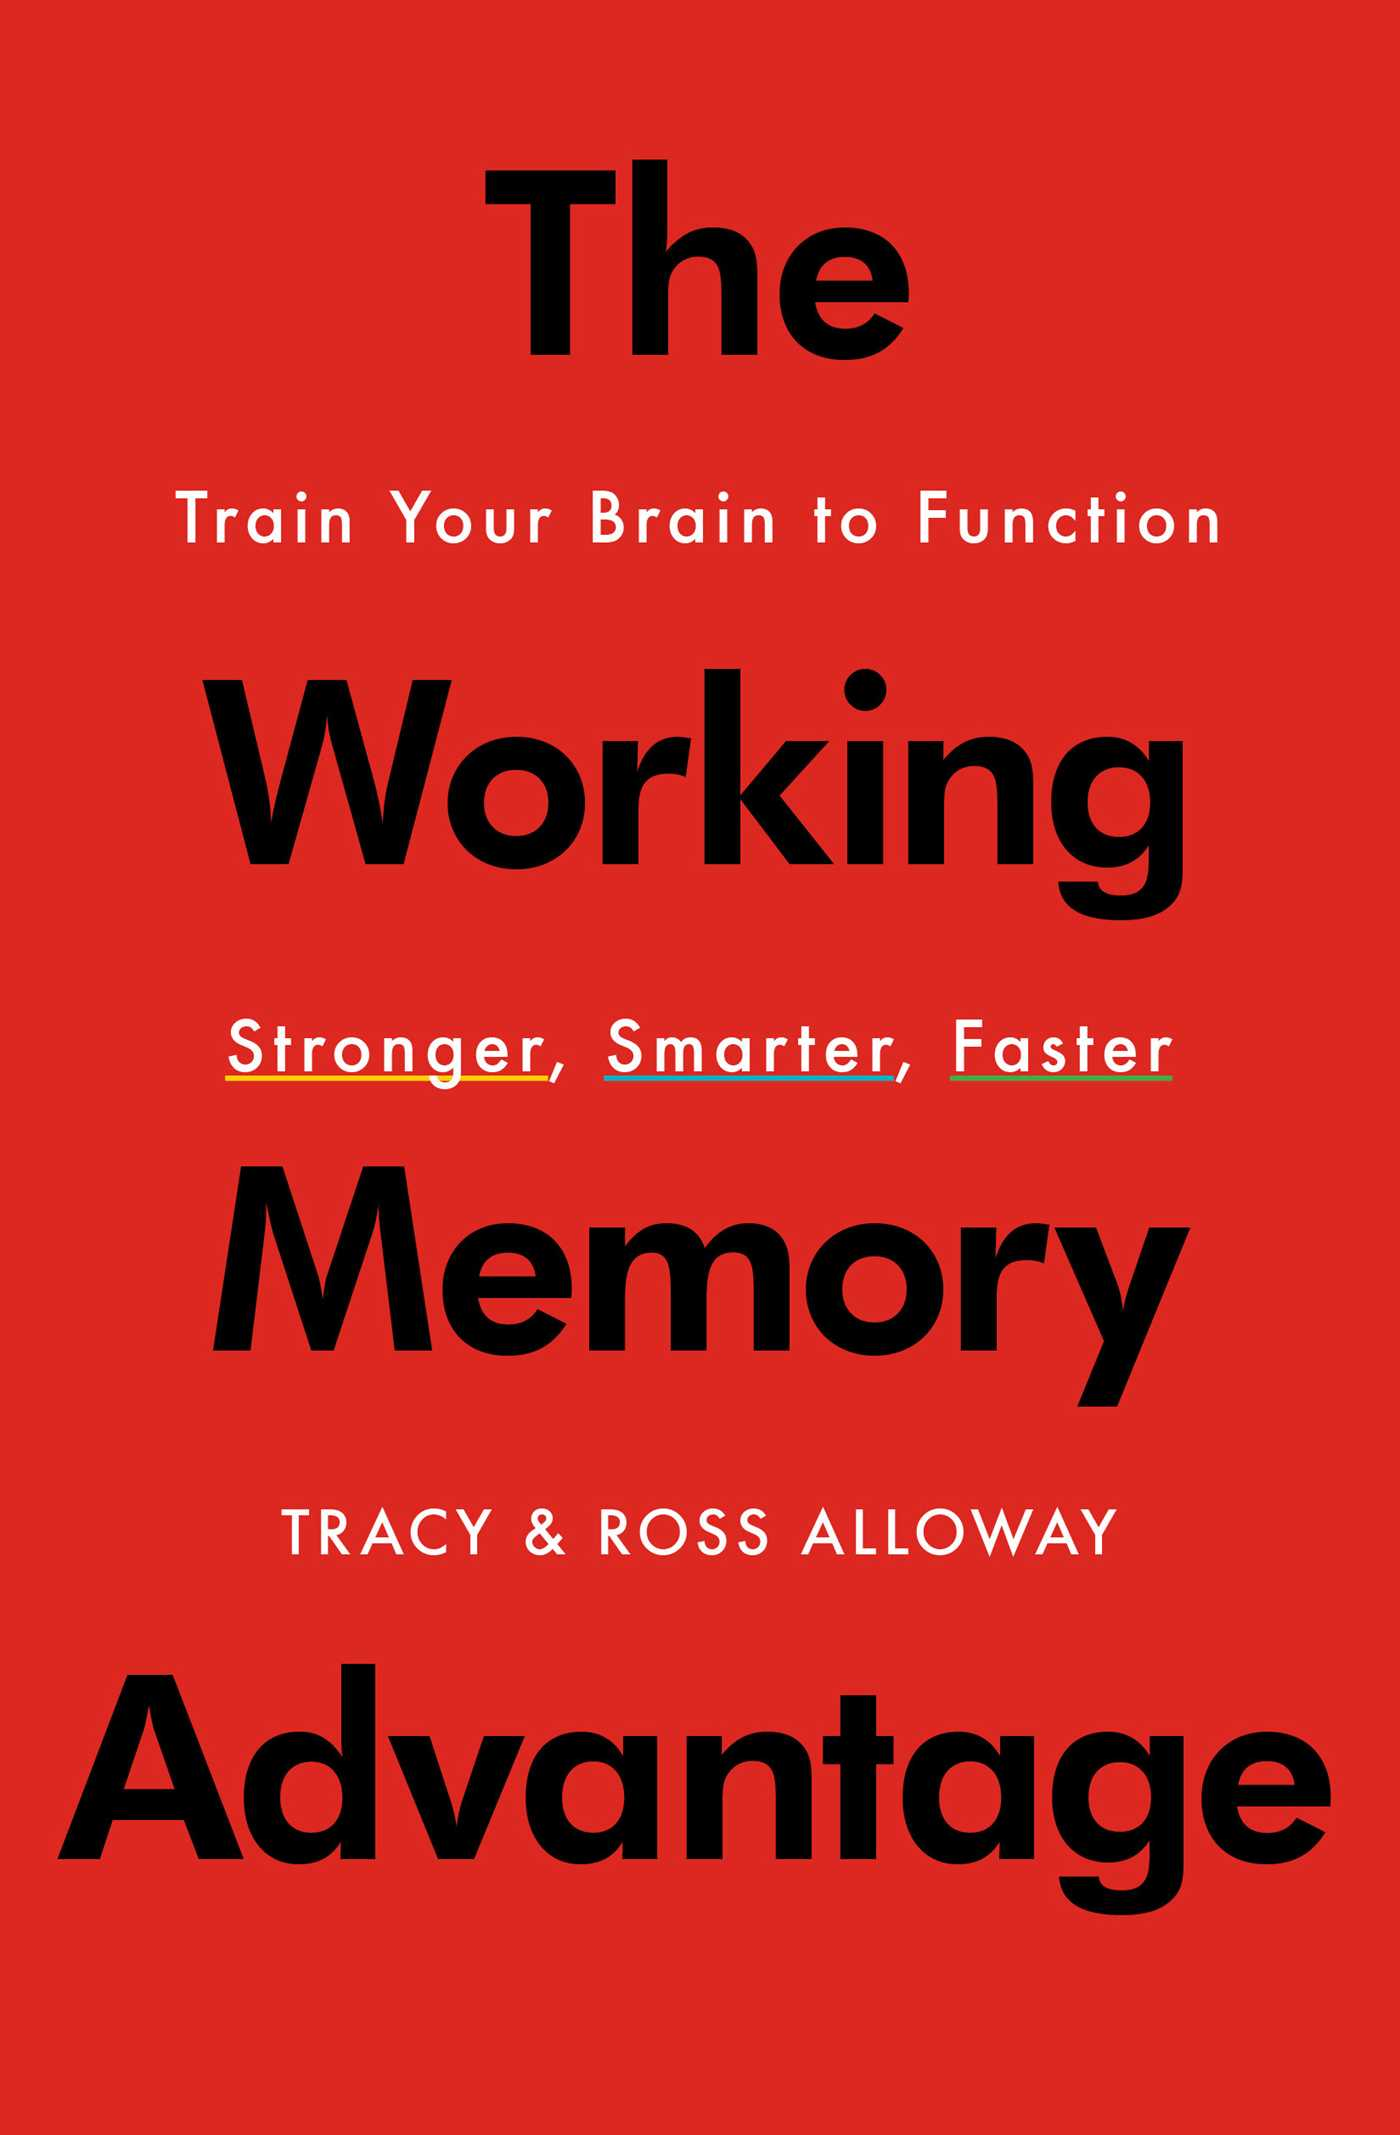 What Is Working Memory >> The Working Memory Advantage Book By Tracy Alloway Ross